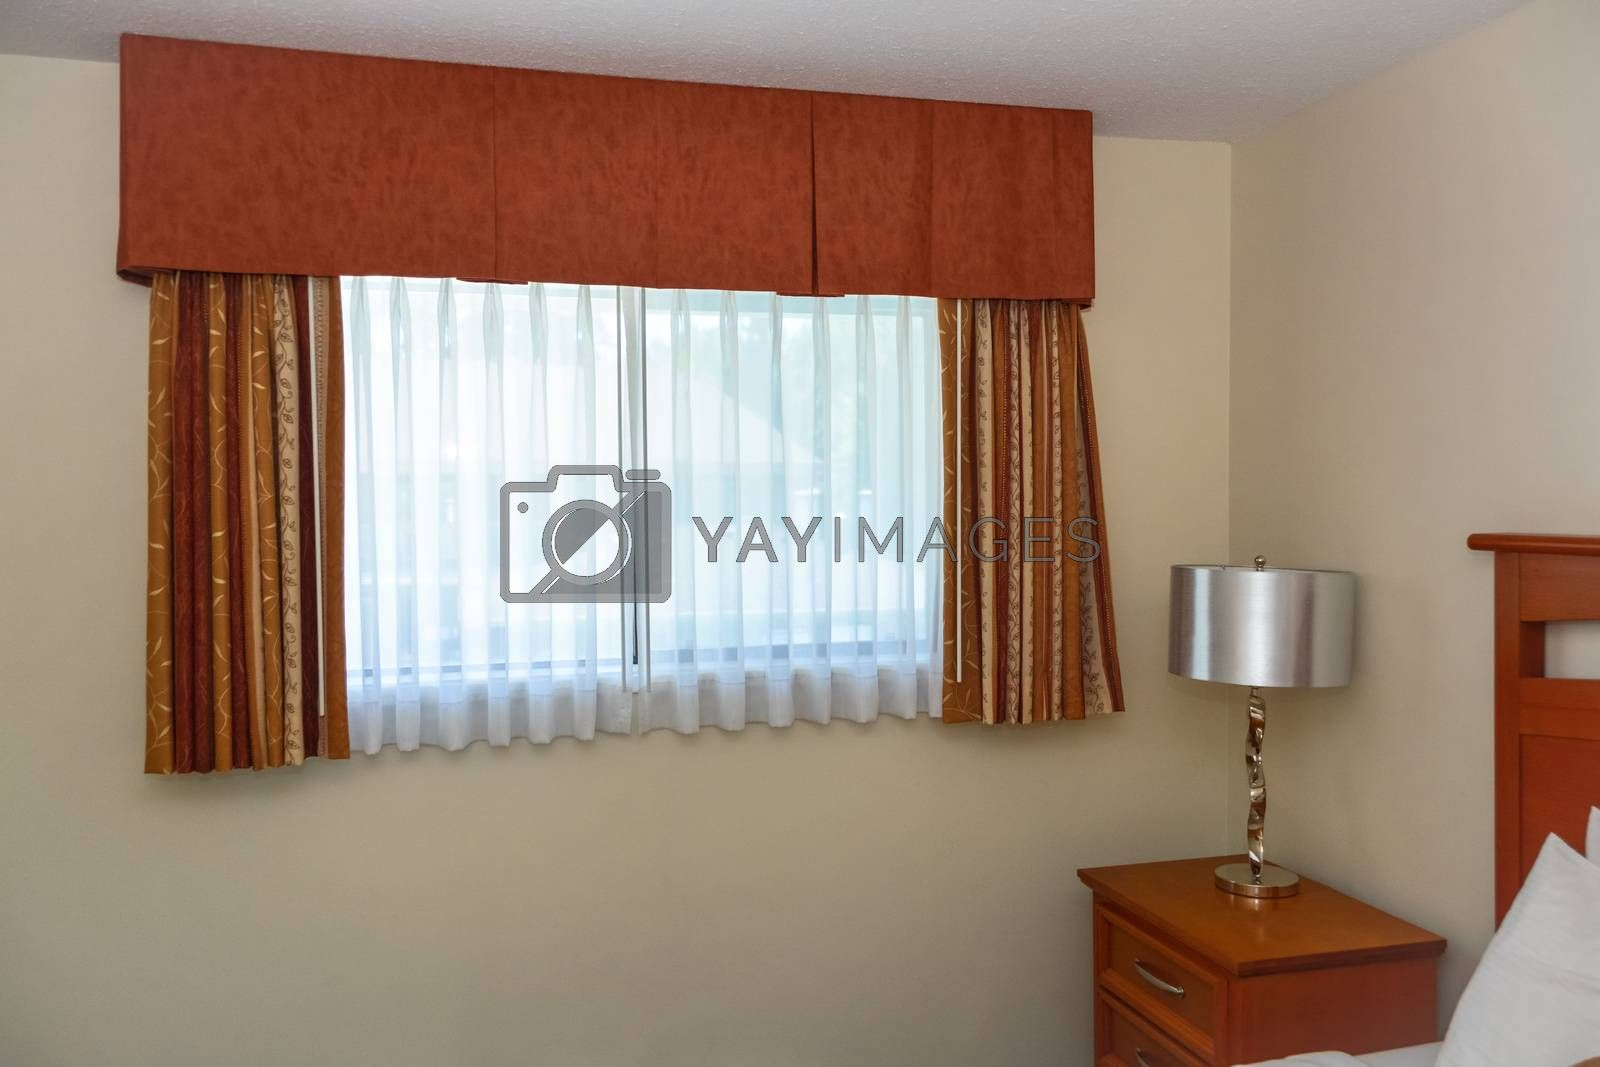 Bedroom window with the curtains and bedside table in the corner of the room